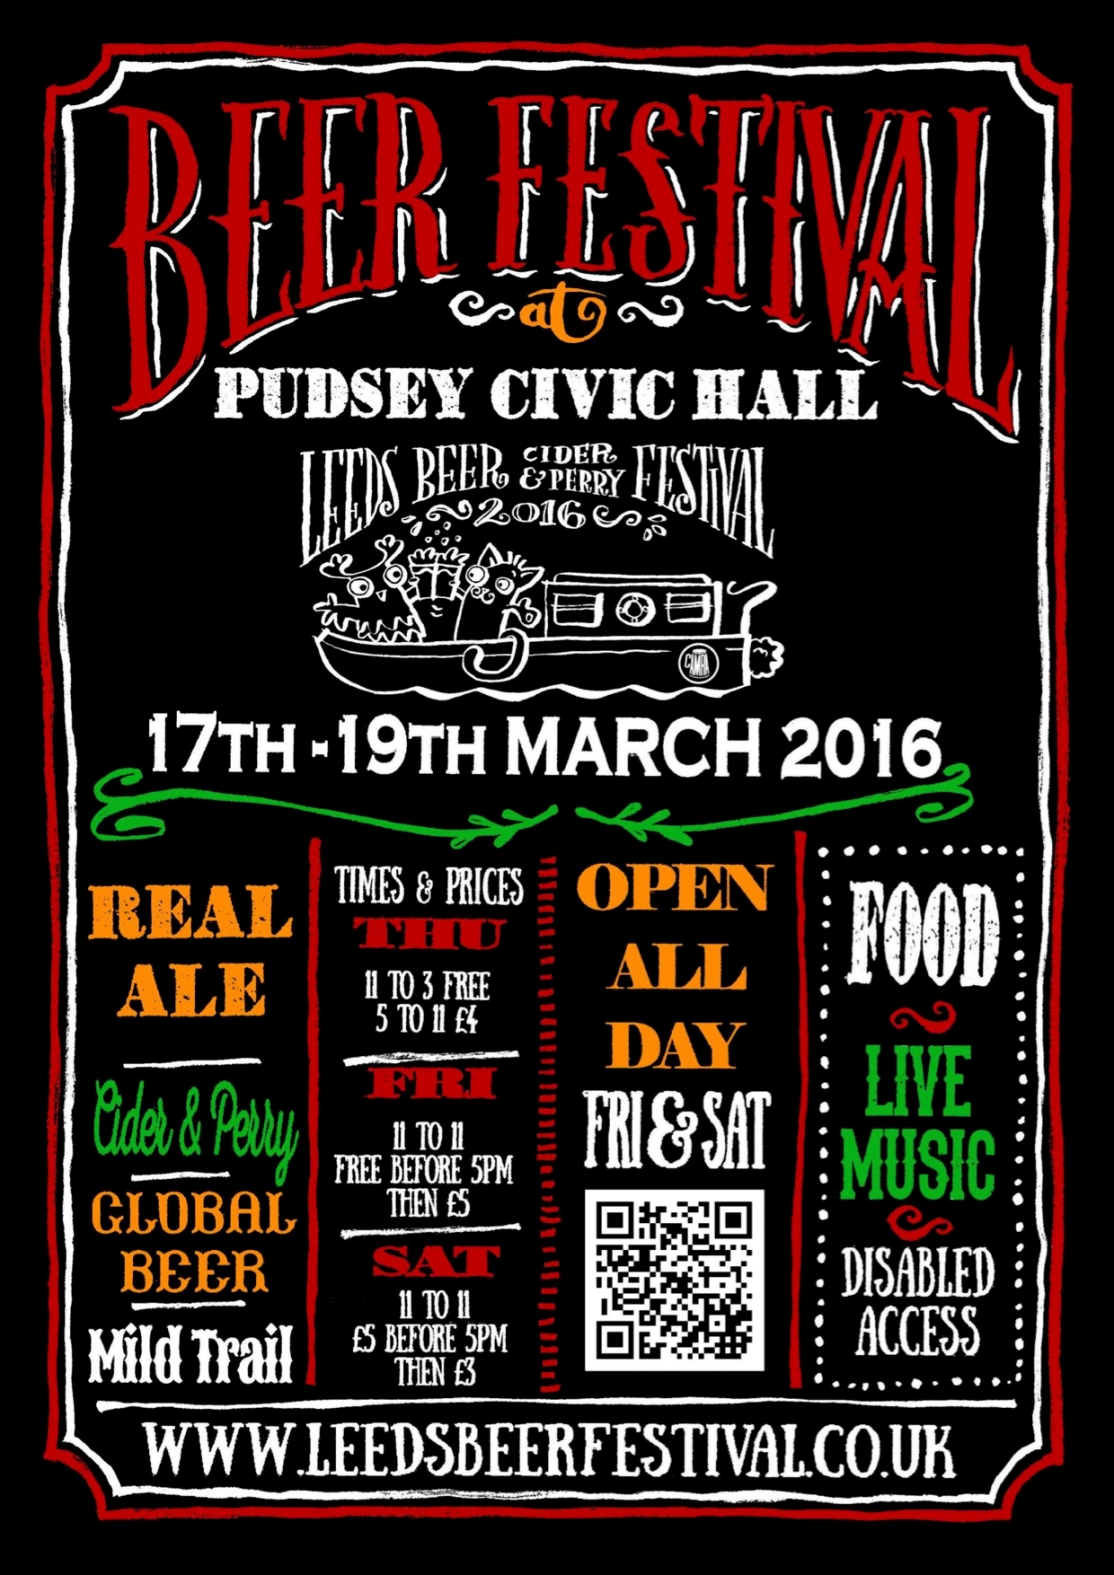 Leeds Beer Festival 2016 A4 POSTER (with bleed)